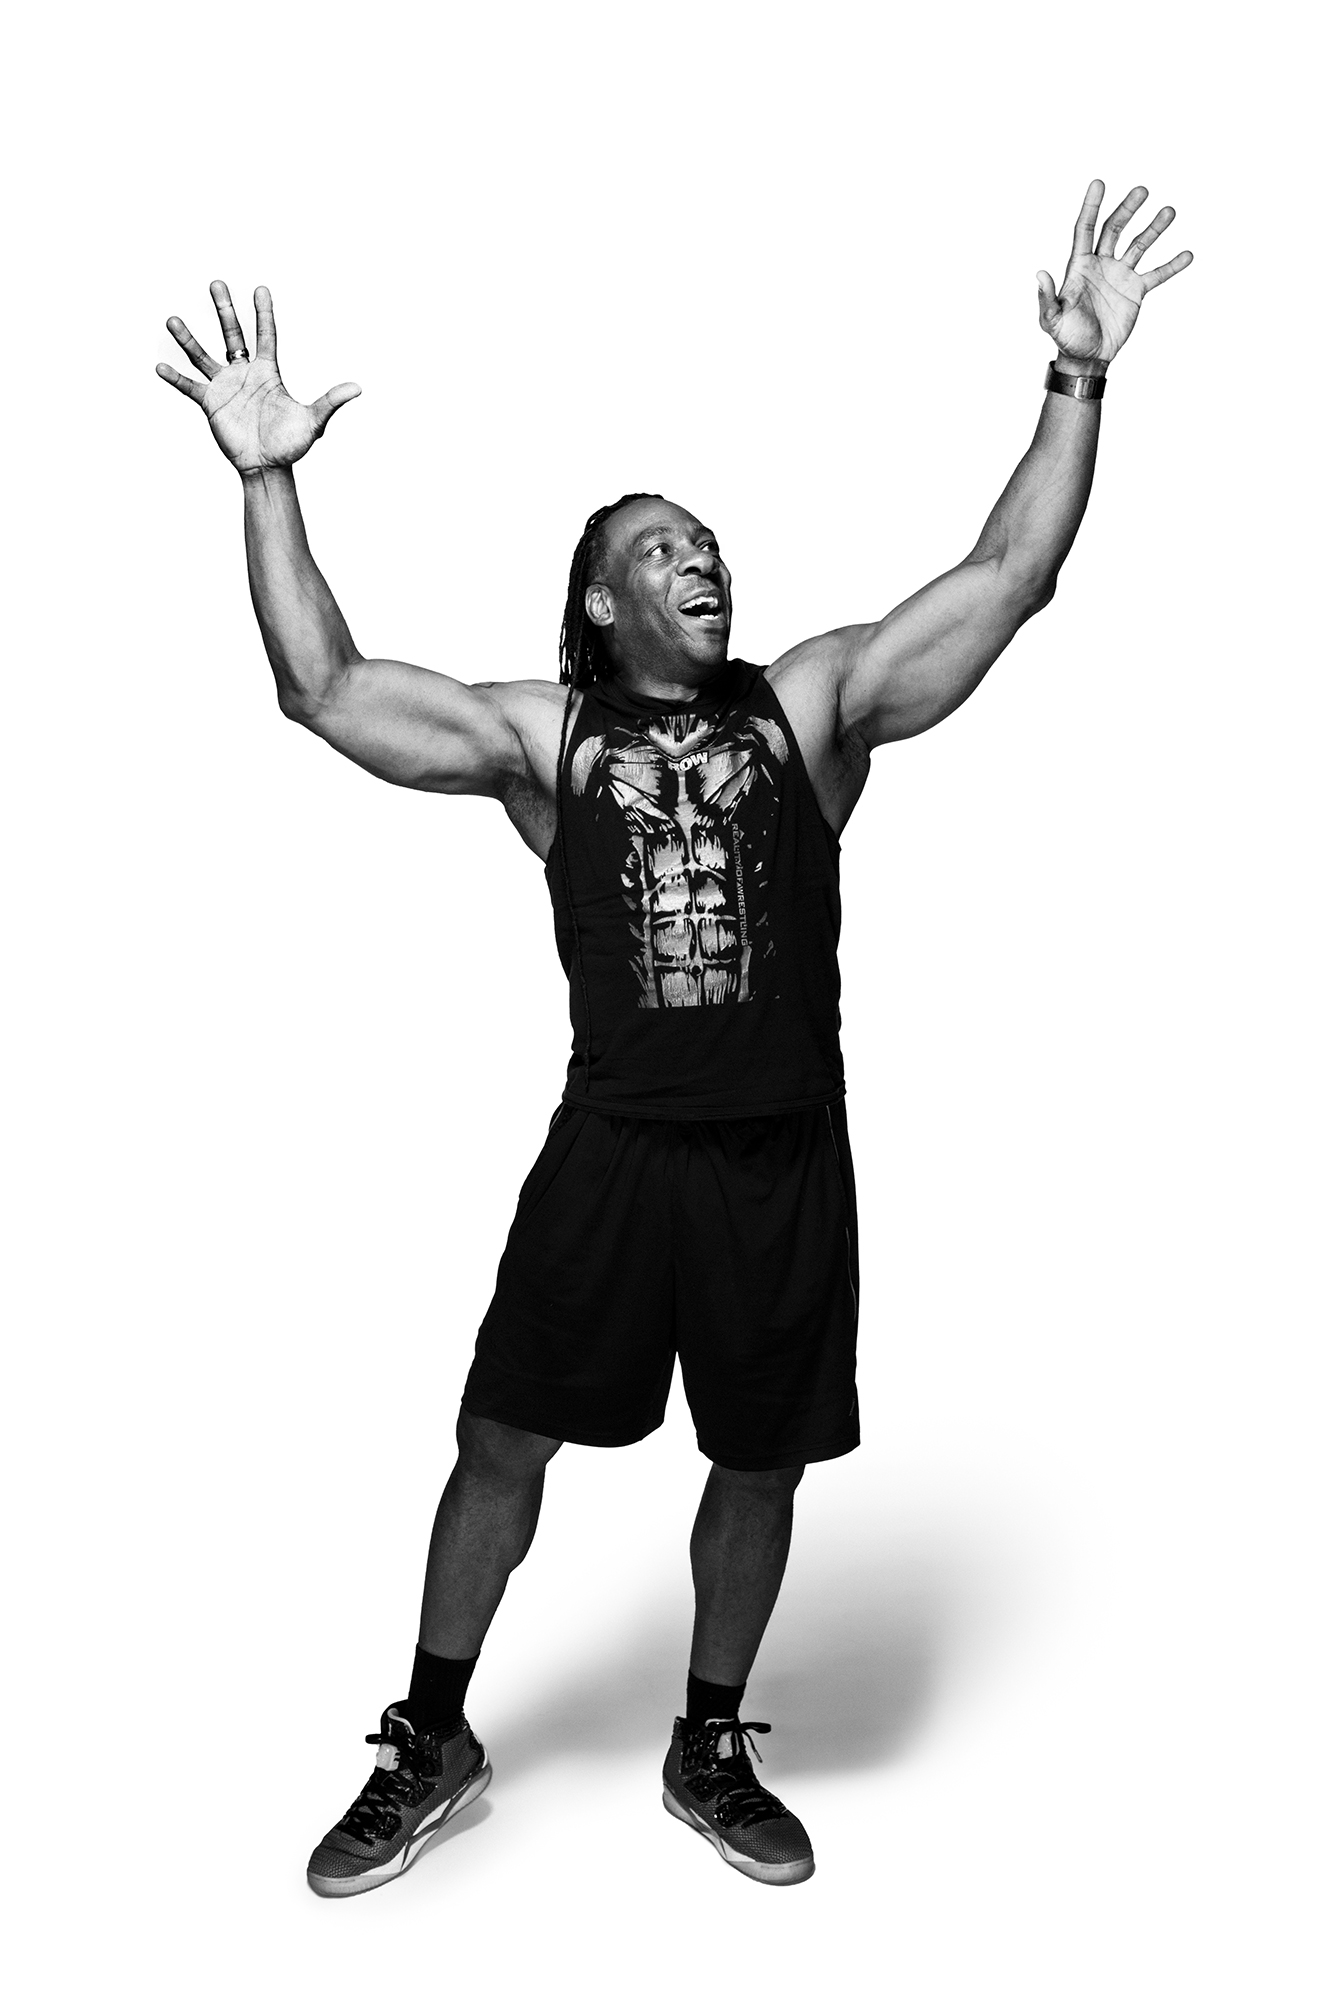 Booker T, 5-time WWE champion wrestler and owner of Reality of Wrestling, photographed at the Reality of Wrestling gym in Texas City, Texas, by Houston sports photographer, Todd Spoth.